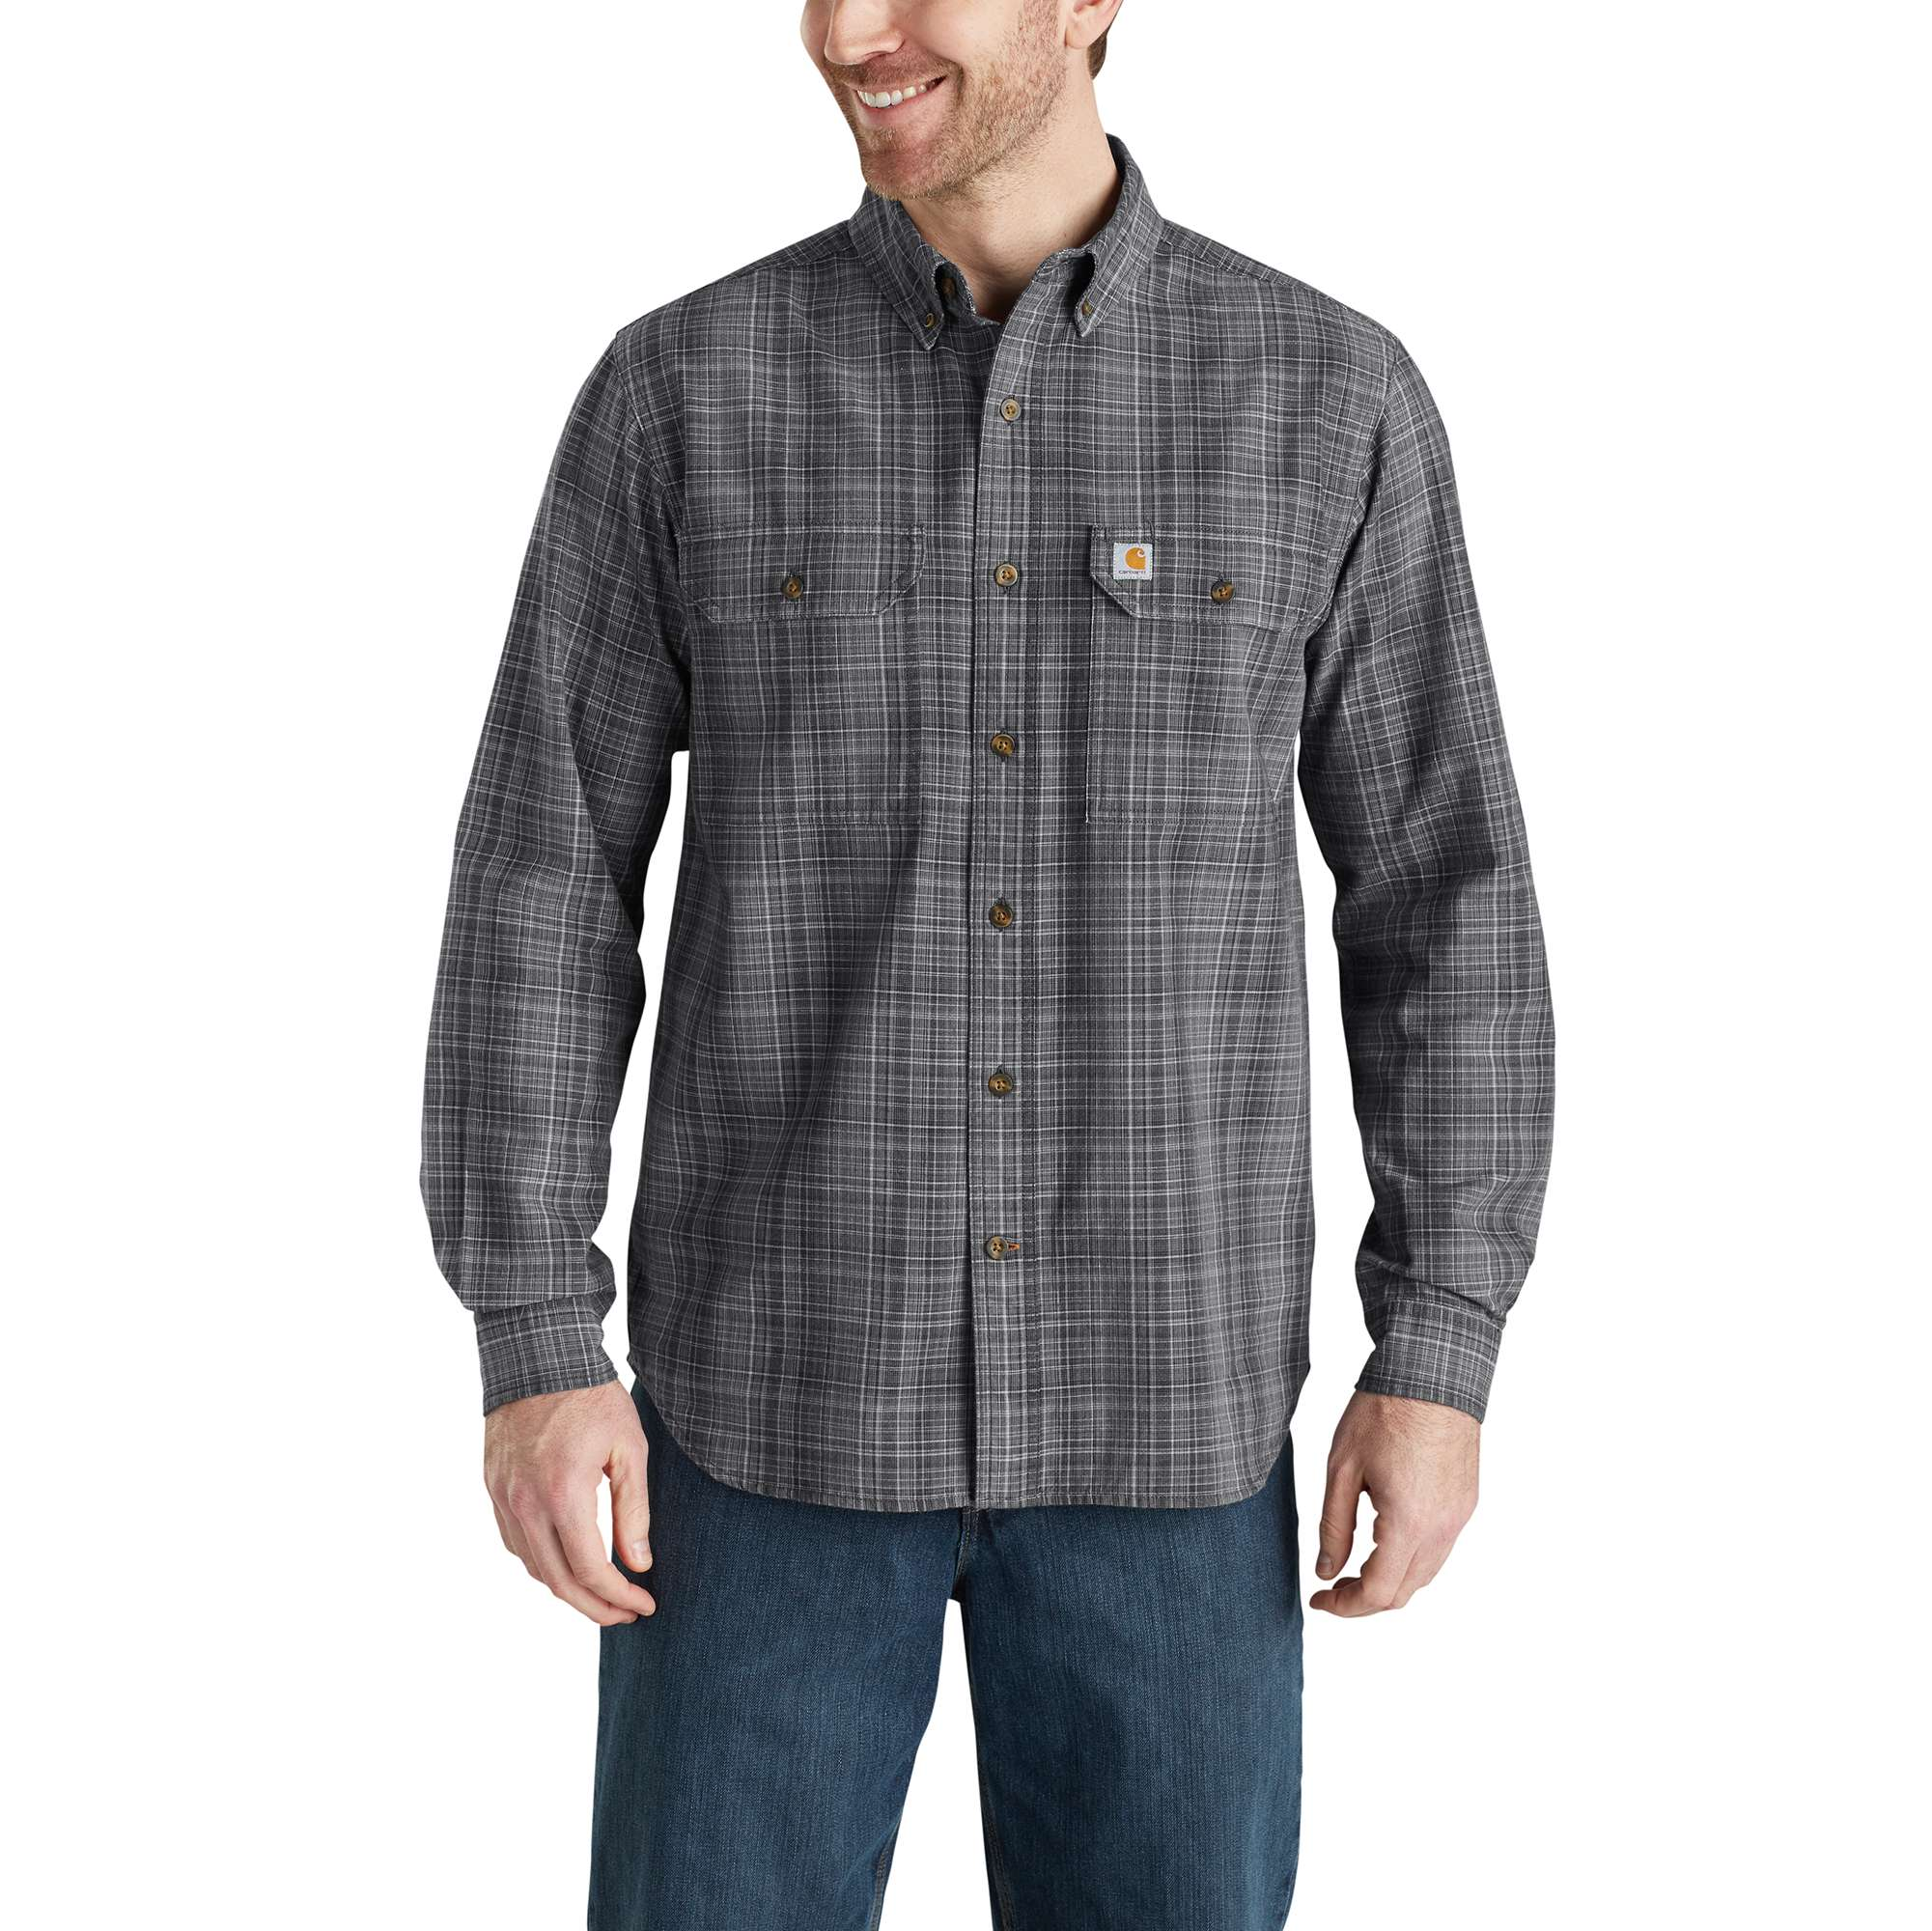 Men's Fort Plaid Long Sleeve Shirt, Gray, swatch